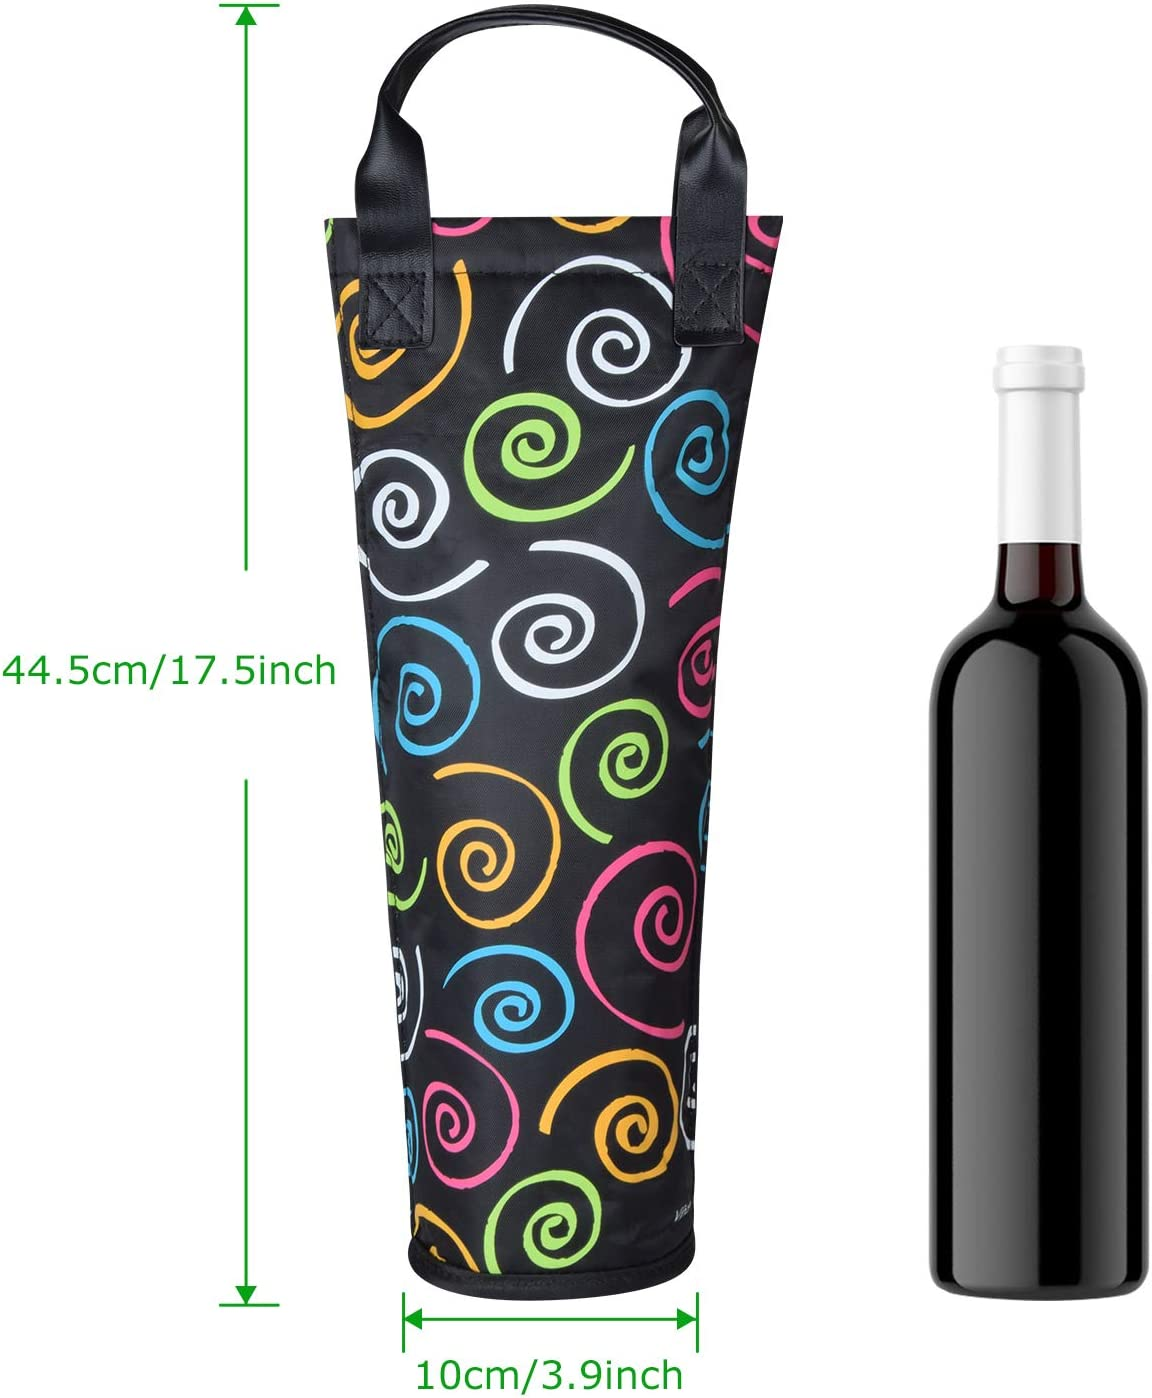 Amazon Com Insulated Single Bottle Nylon Wine Tote Carrier Travel Cooler Bag Purse Leather Handles Steel Opening Reusable Spiral Bar Tools Drinkware